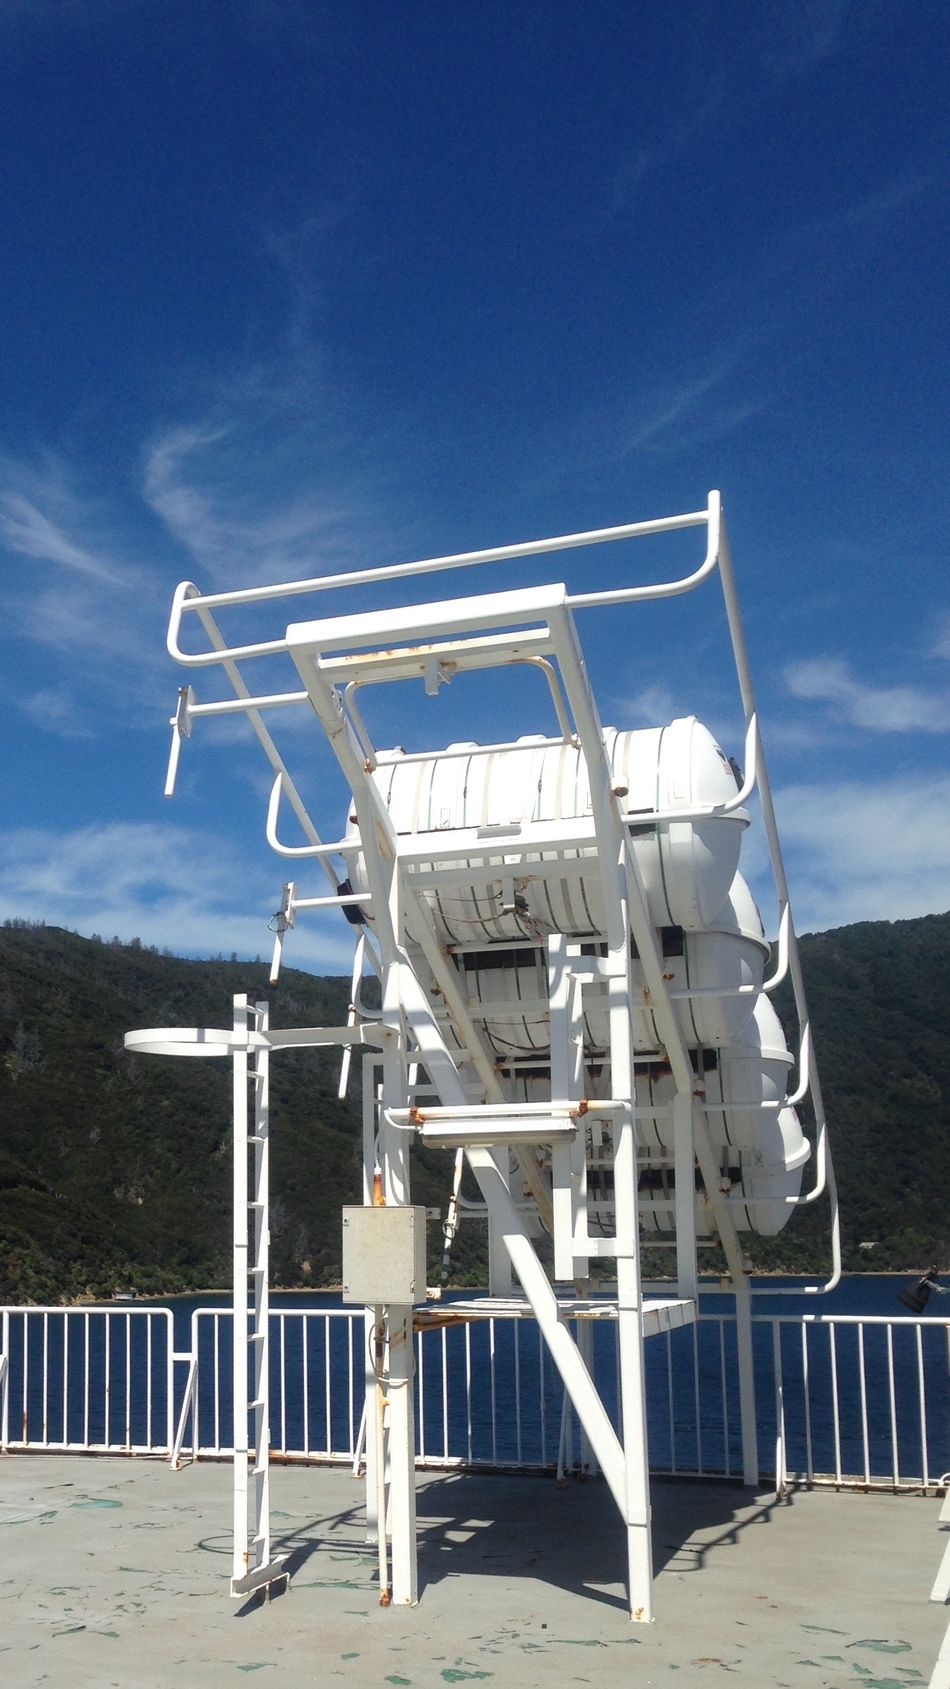 Out At Sea Hello World Taking Photos Check This Out Leaving The Harbour Full Steam Ahead Ship Shape Making A Splash Waterscape Sky Super Skyline We Are Sailing Enjoying The View Sunshine Water Reflections on board the Queen Charlotte Sound ferry